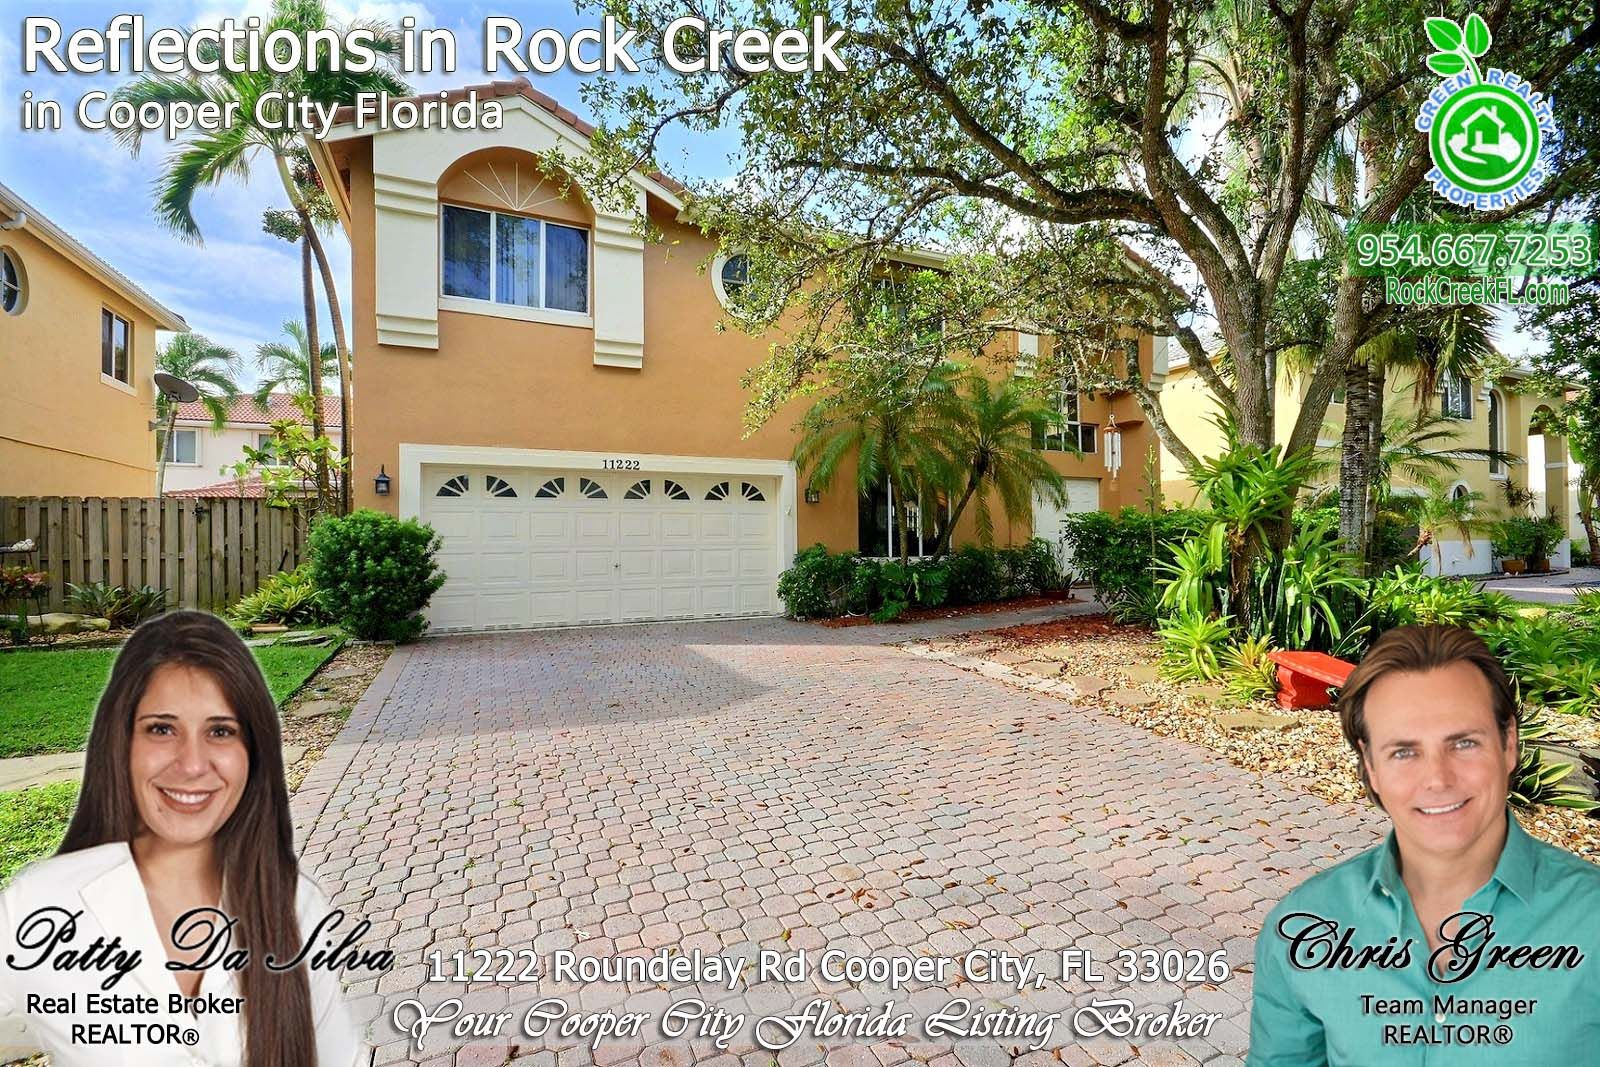 FOR SALE ~ Turnkey 4 bed, 2 5 bath Home in Reflections Rock